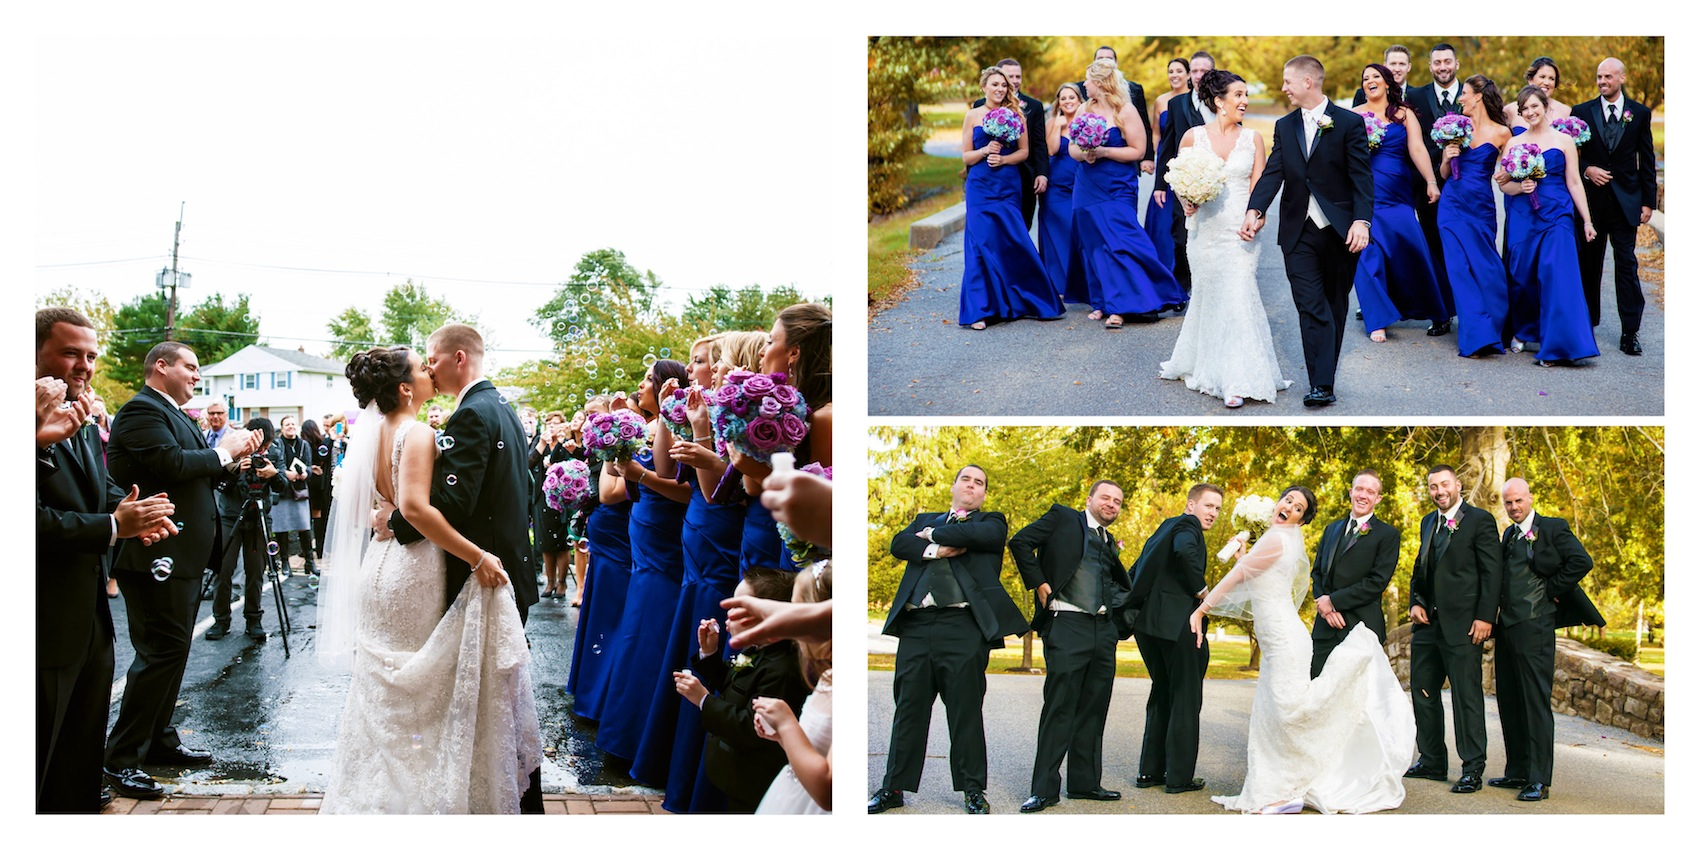 Colleen and Tommy – Wedding Photo Highlights from The Merion in Cinnaminson, NJ